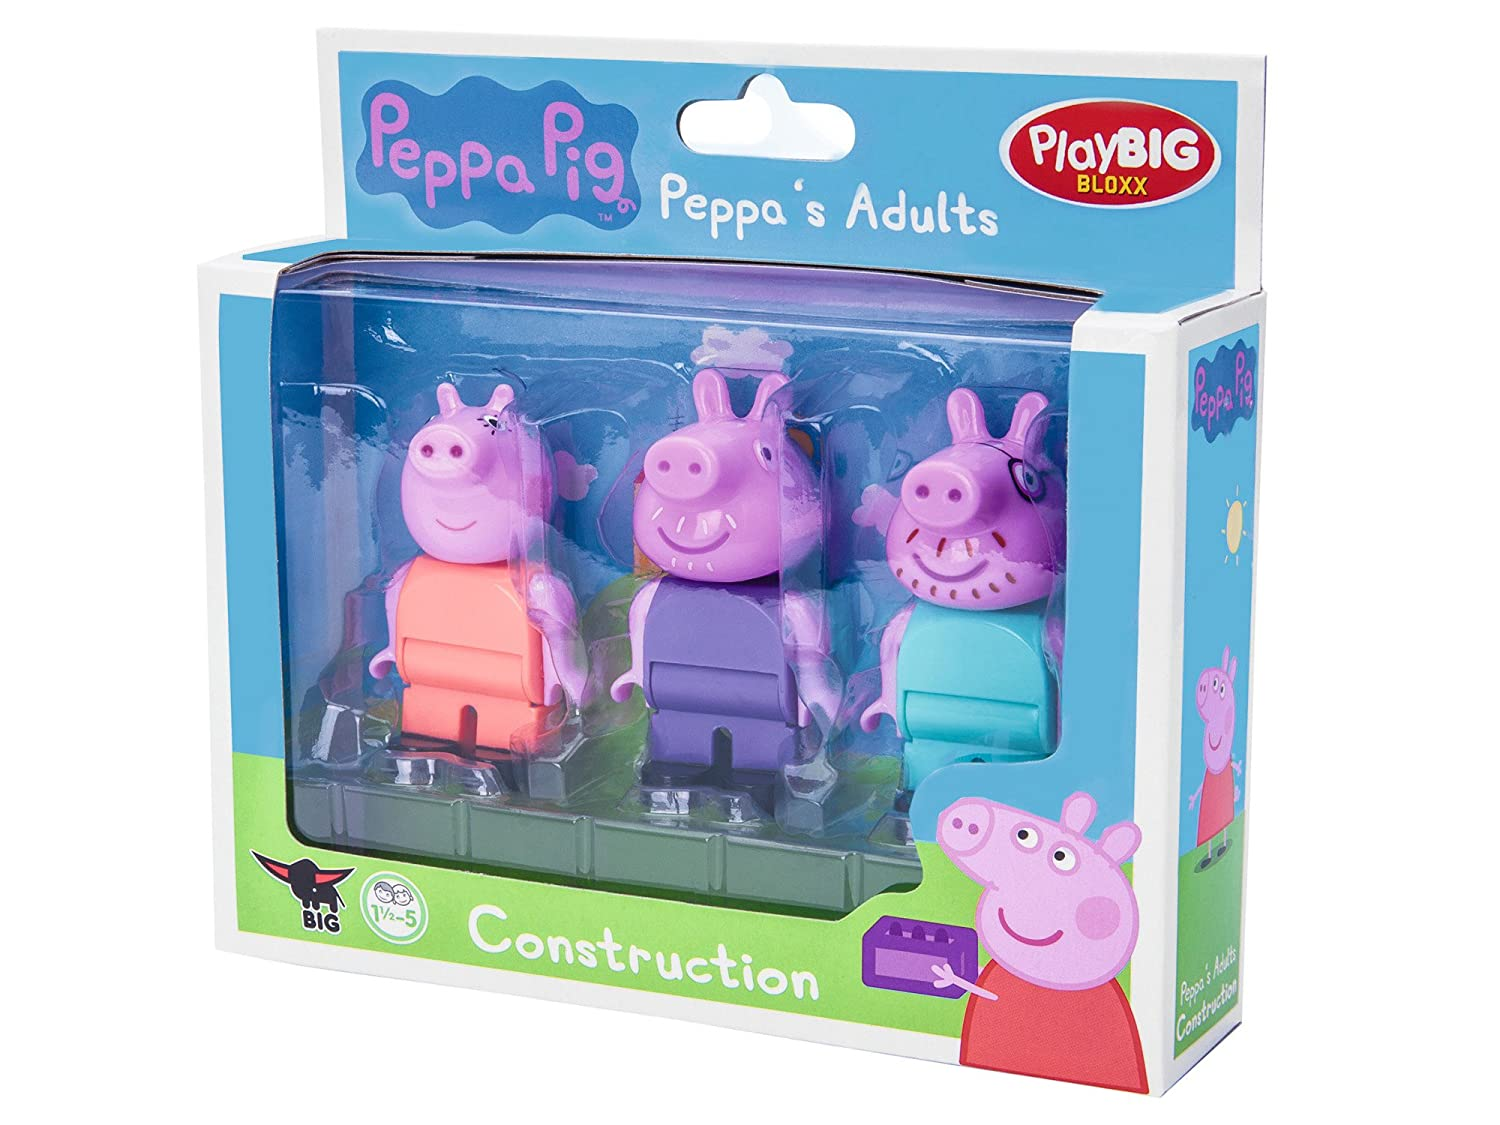 Amazon.com: Playbig Bloxx Peppa Pig Adults: Toys & Games